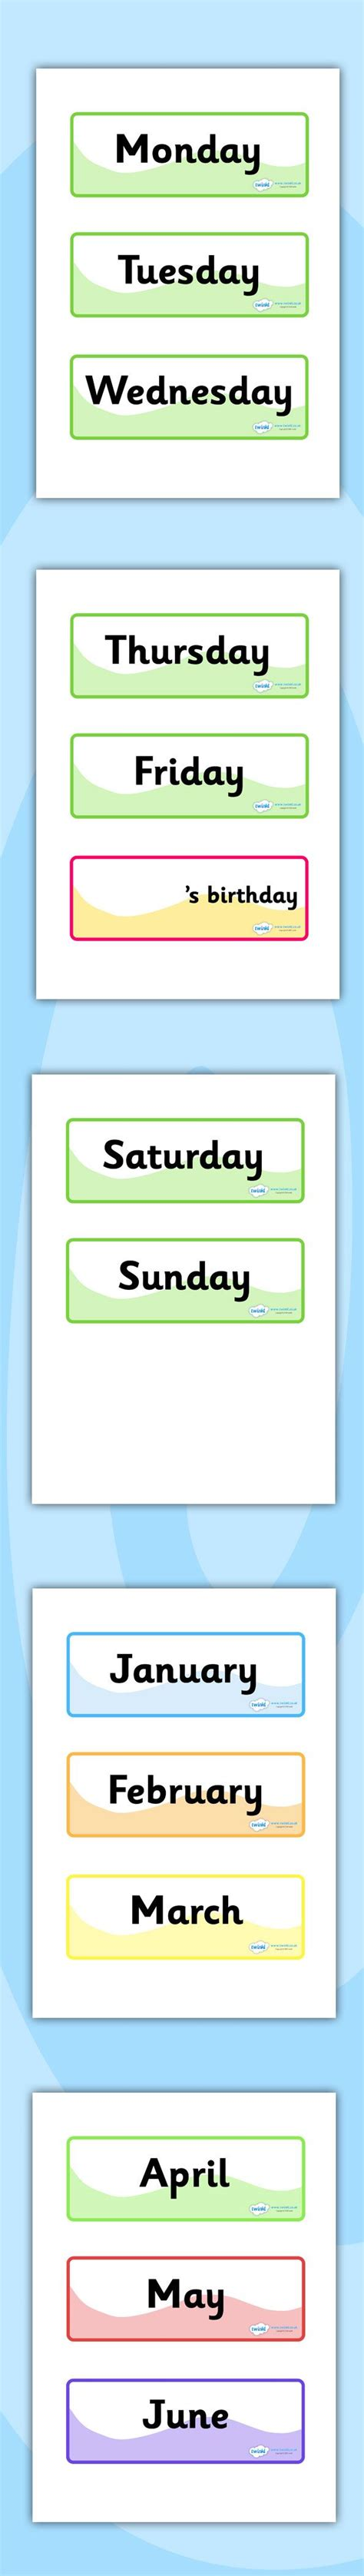 printable calendar ks1 twinkl resources gt gt days of the week months of the year